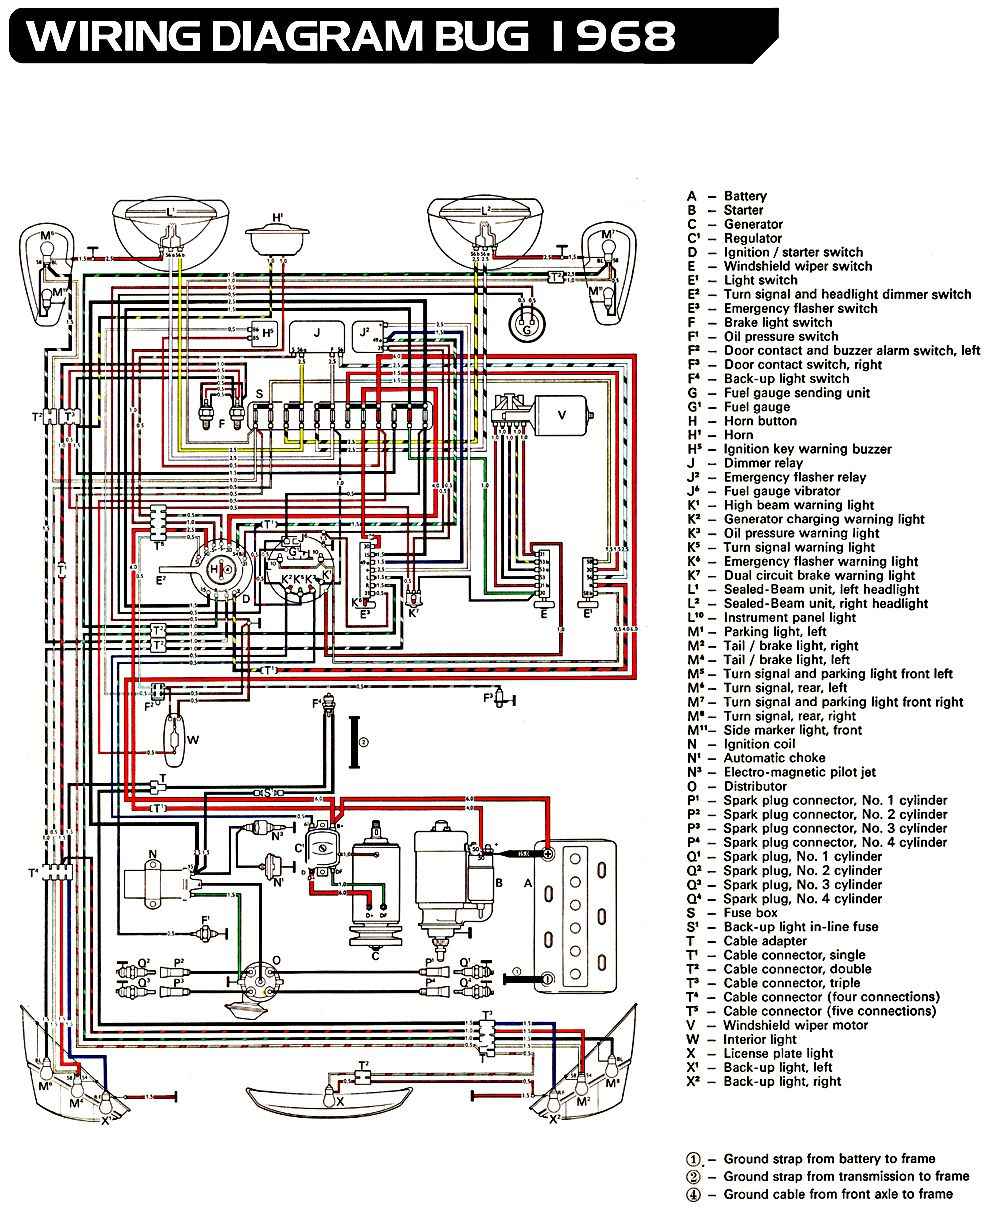 3a1908112d3826270ed5e3be362292bf vw bug ignition wiring diagram 73 vw wiring diagram free vw wiring diagrams at pacquiaovsvargaslive.co